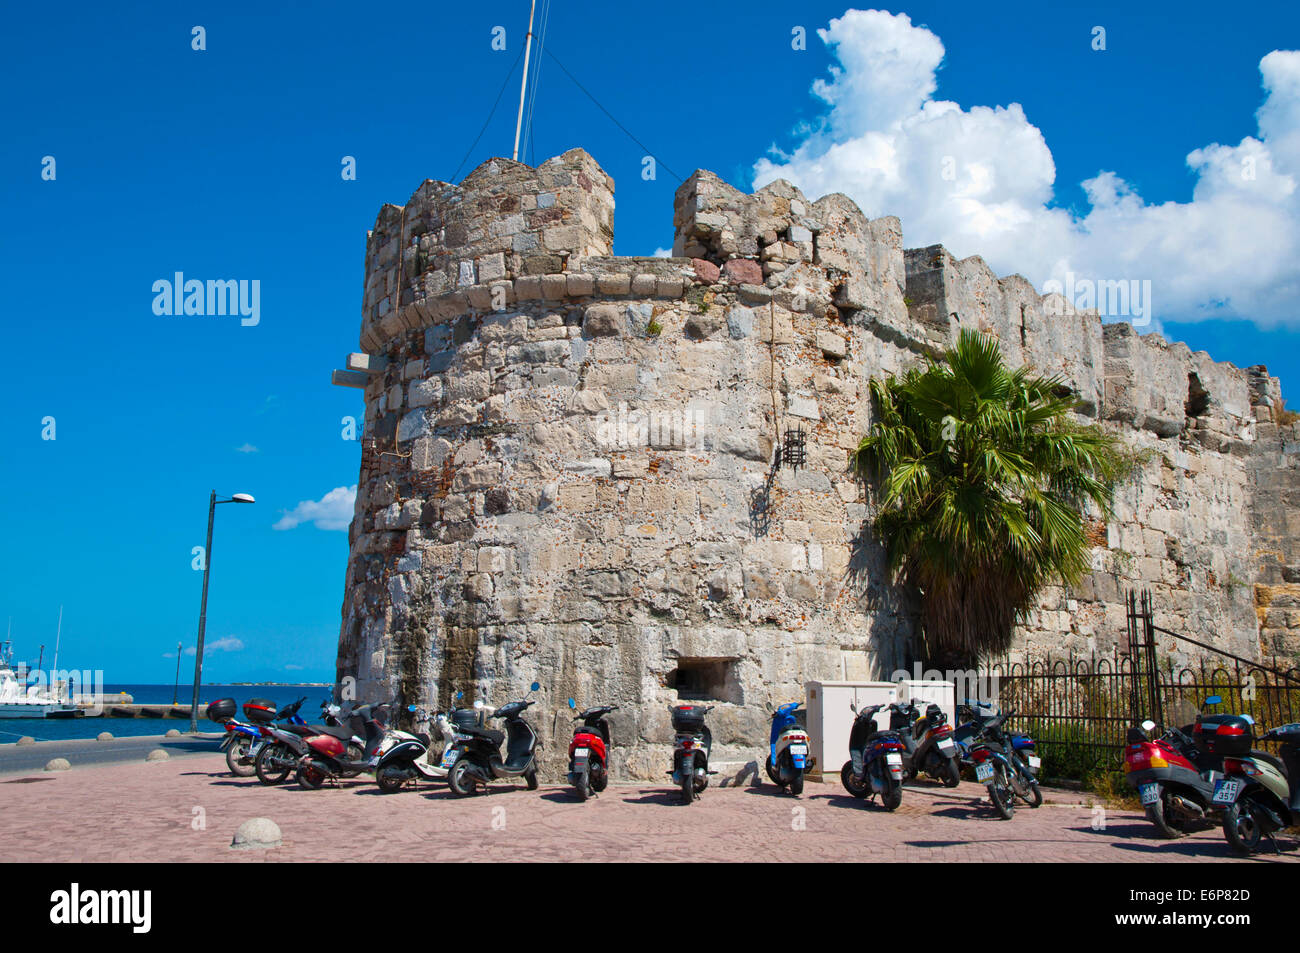 Scooters parked outside castle walls, the port, Kos town, Kos island, Dodecanese islands, South Aegean region, Greece, - Stock Image